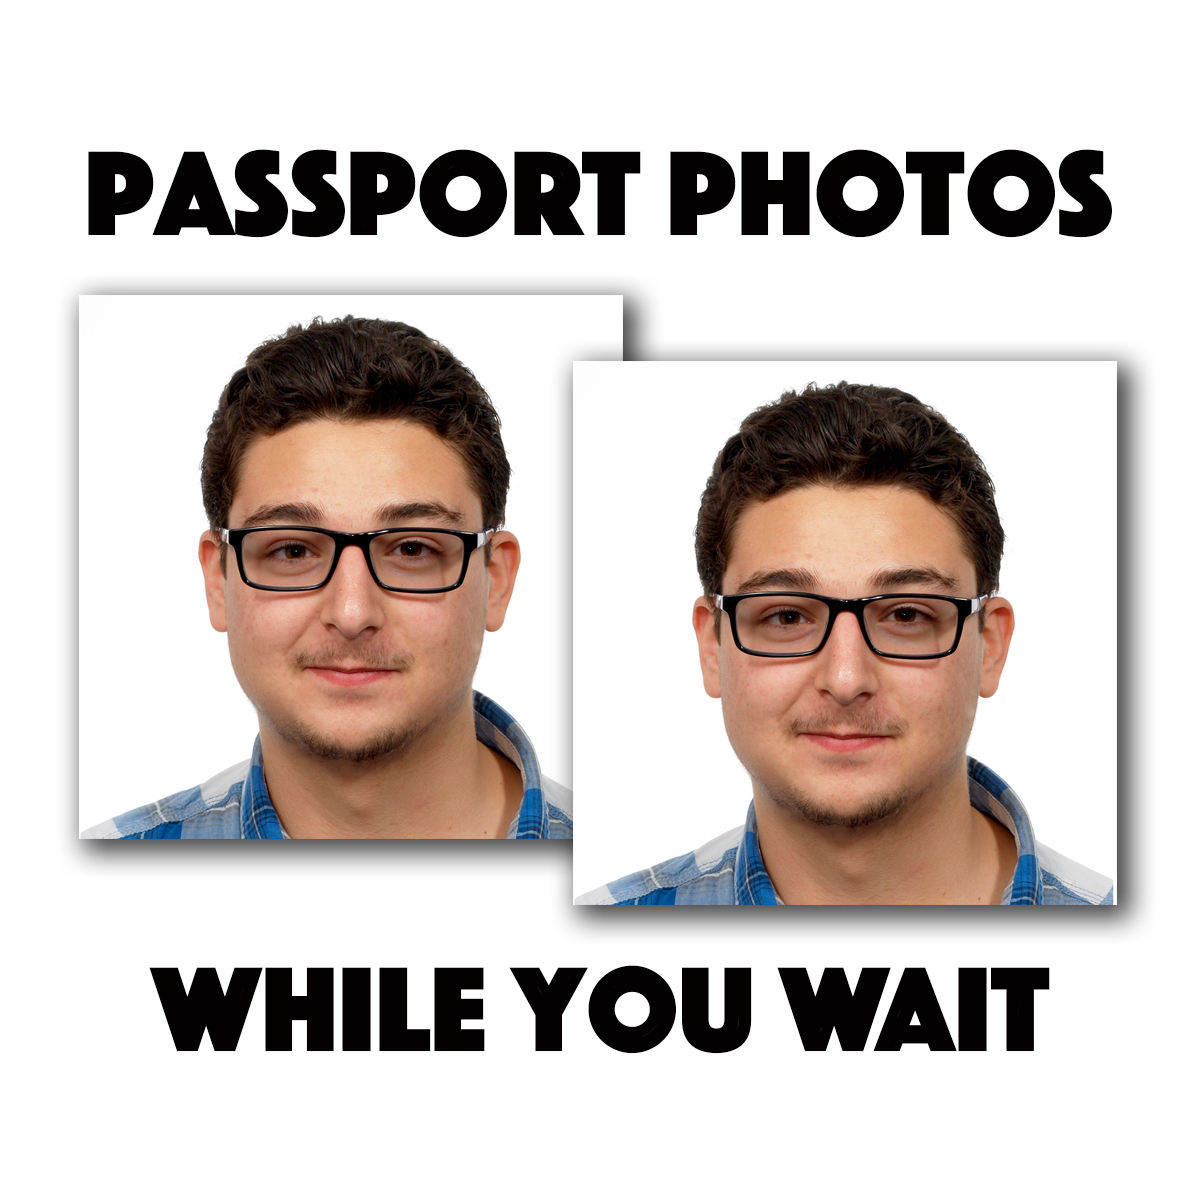 ID photos for all countries and documents